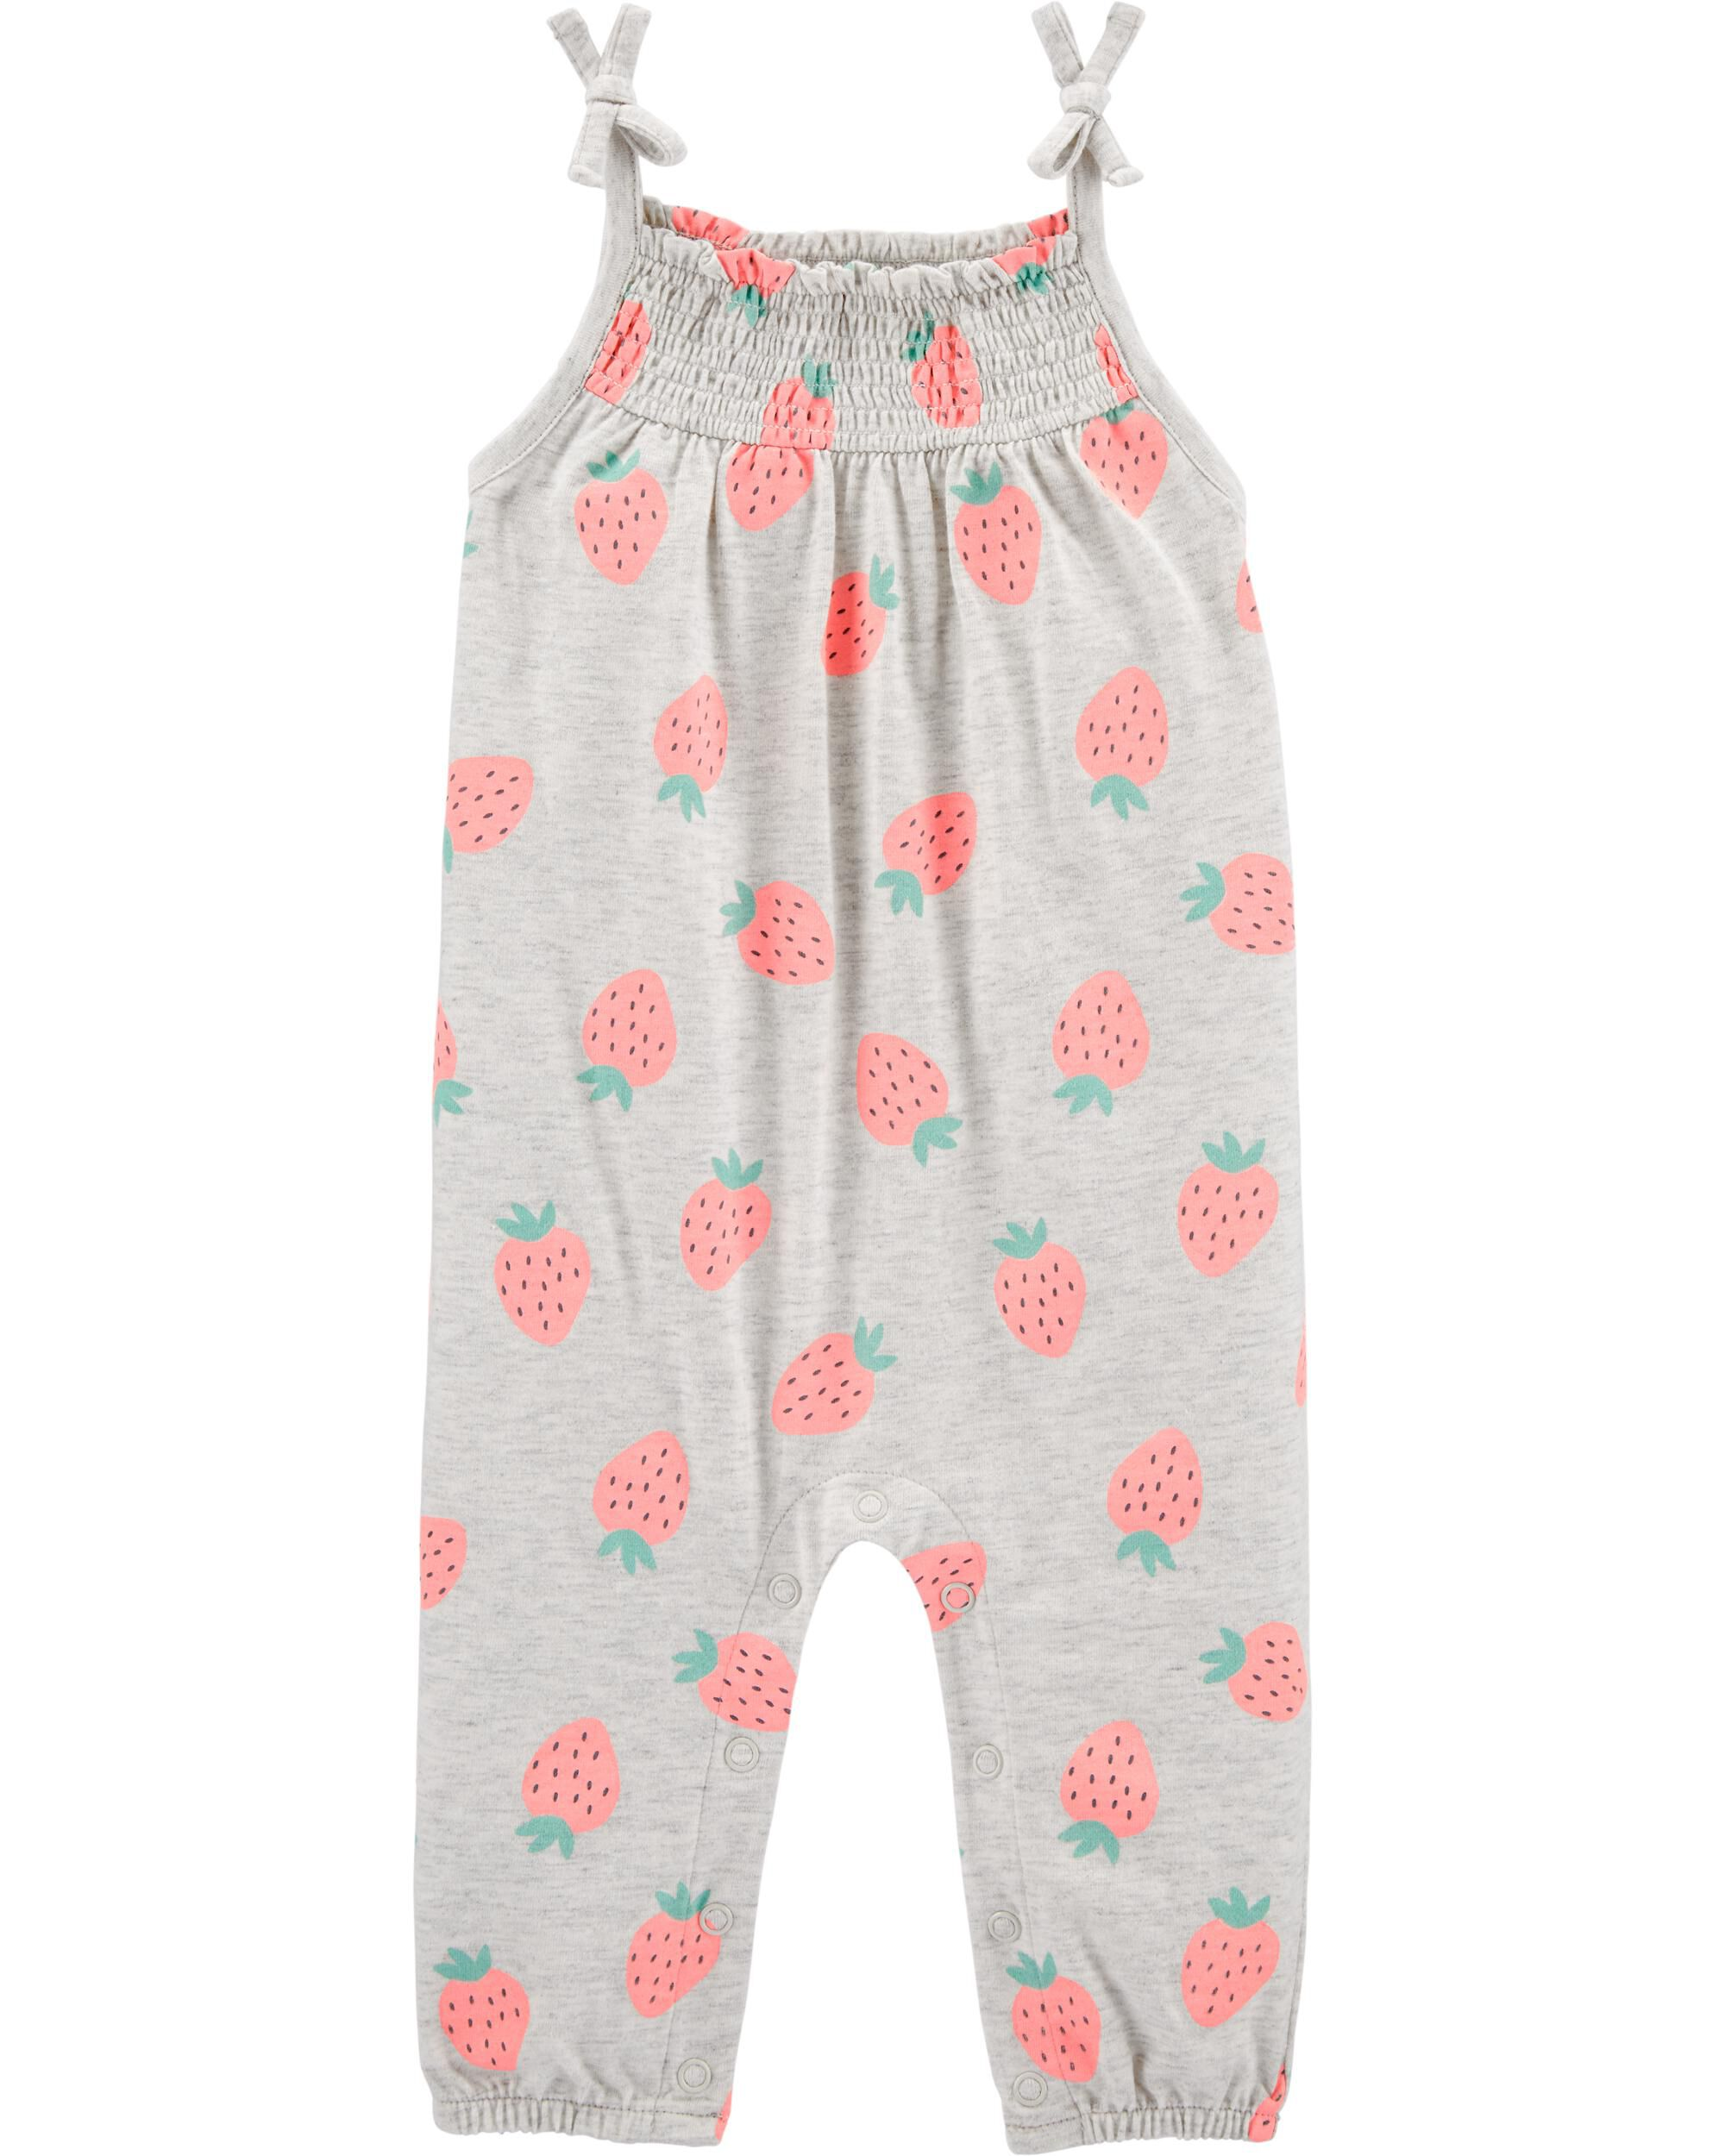 Carters Baby Girls Floral Butterfly Romper 12 Months White Multi